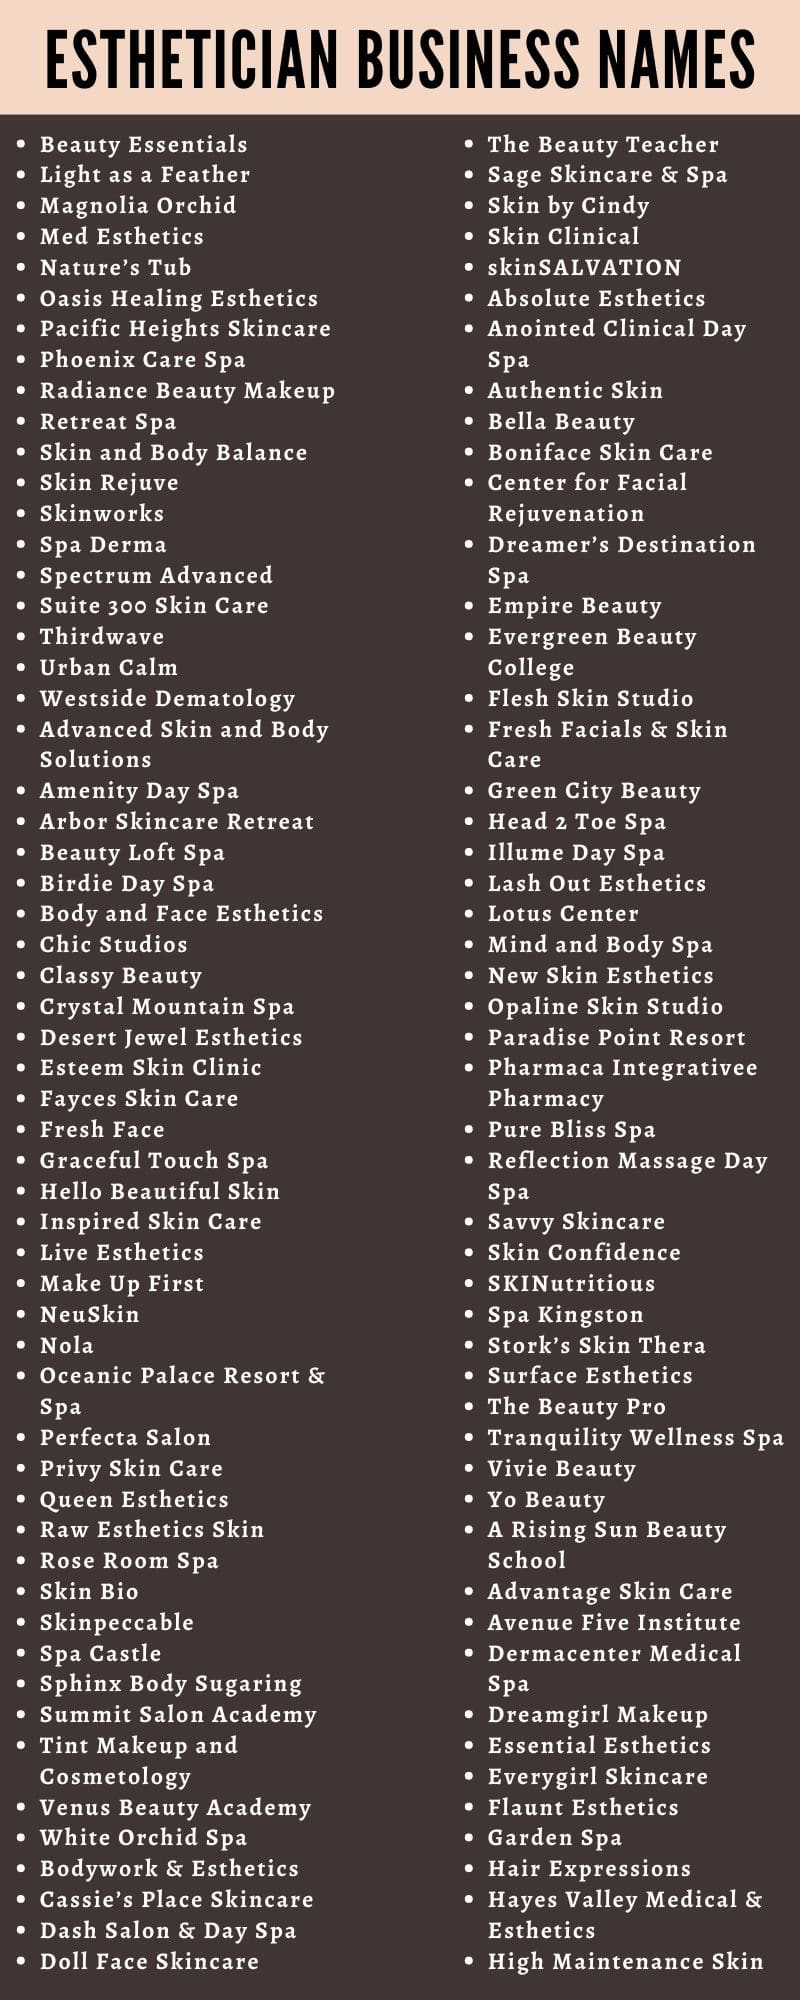 19 Catchy Esthetician Business Names Ideas and Suggestions